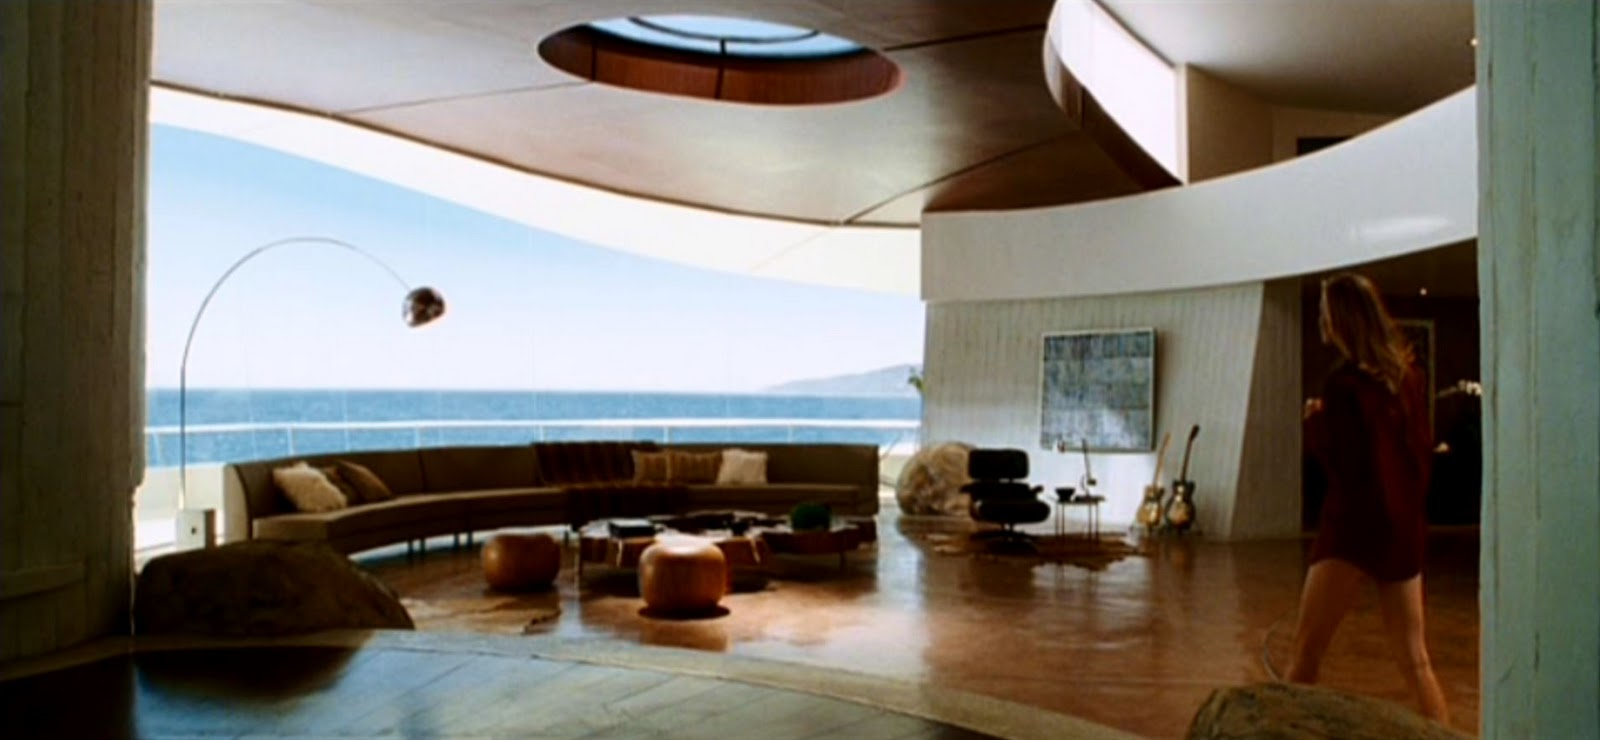 tony stark living room archithings arquitectura y cine iron 14516